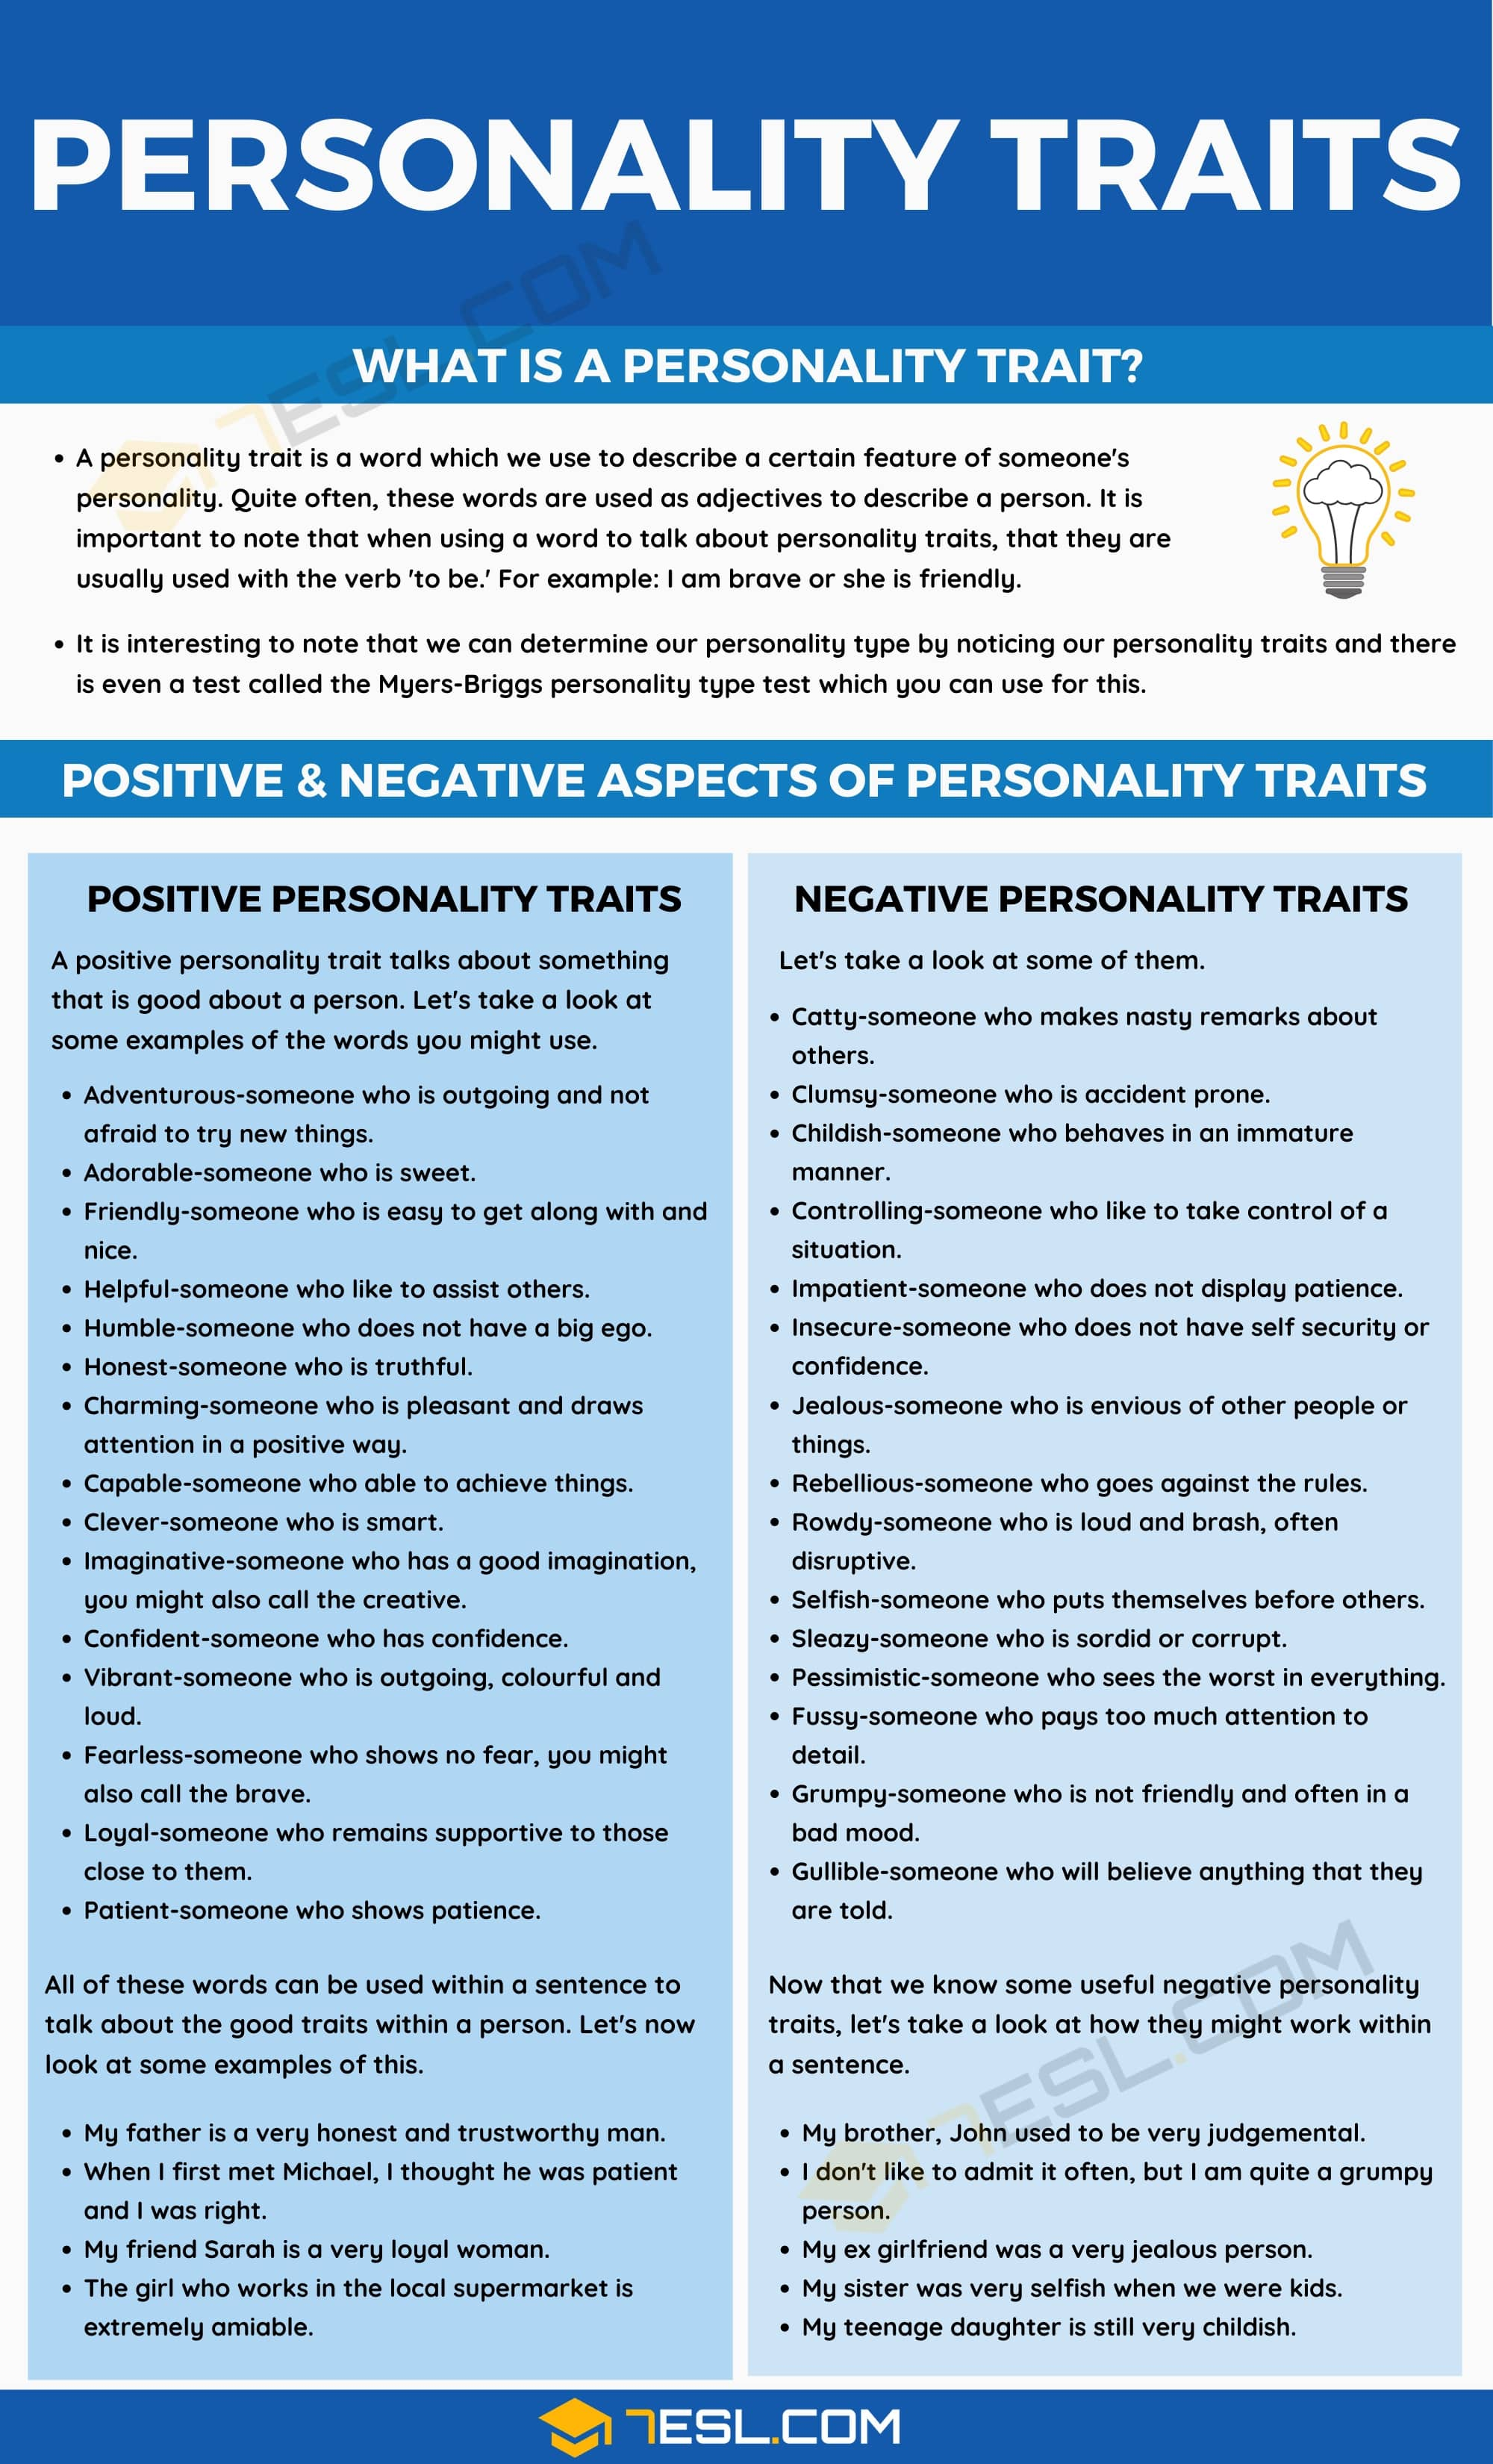 Words to describe someone's personality traits